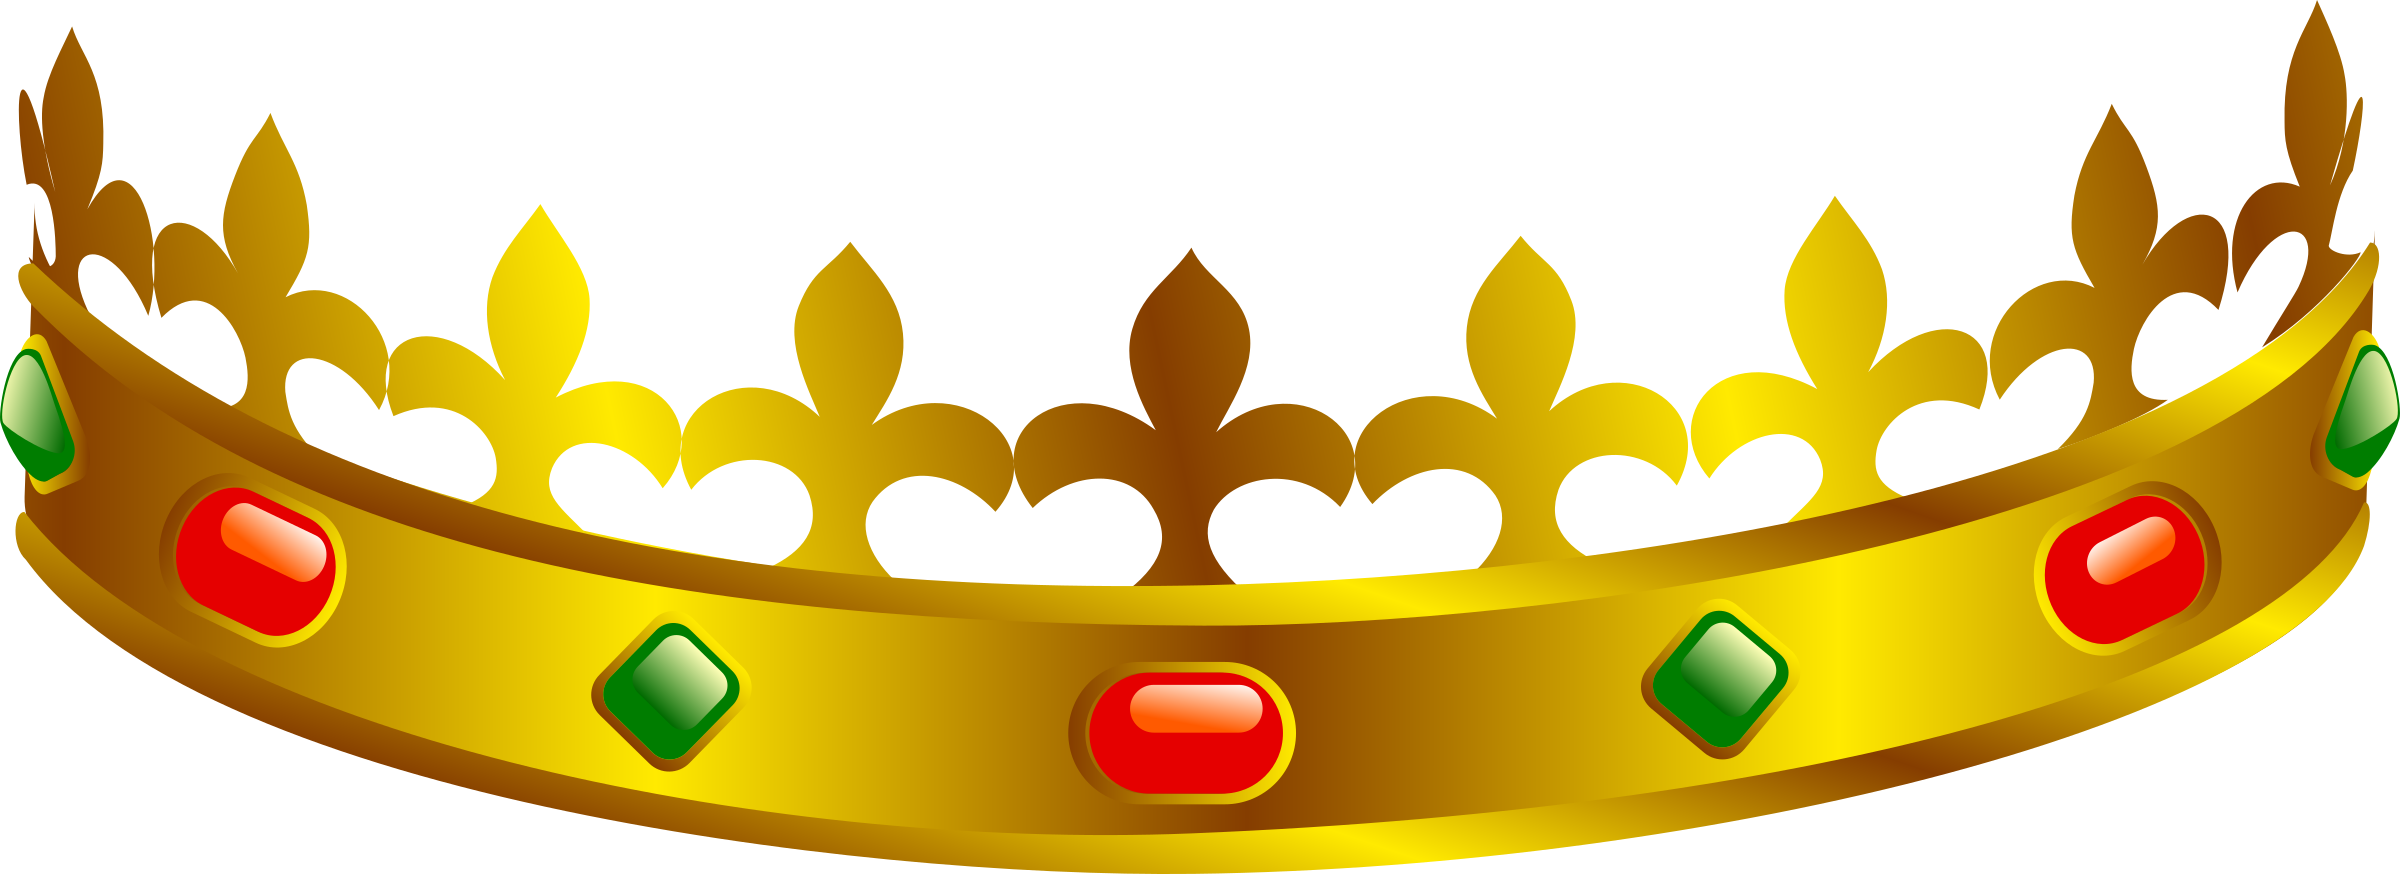 clipart front crown clip art crowns and tiaras clip art crown free